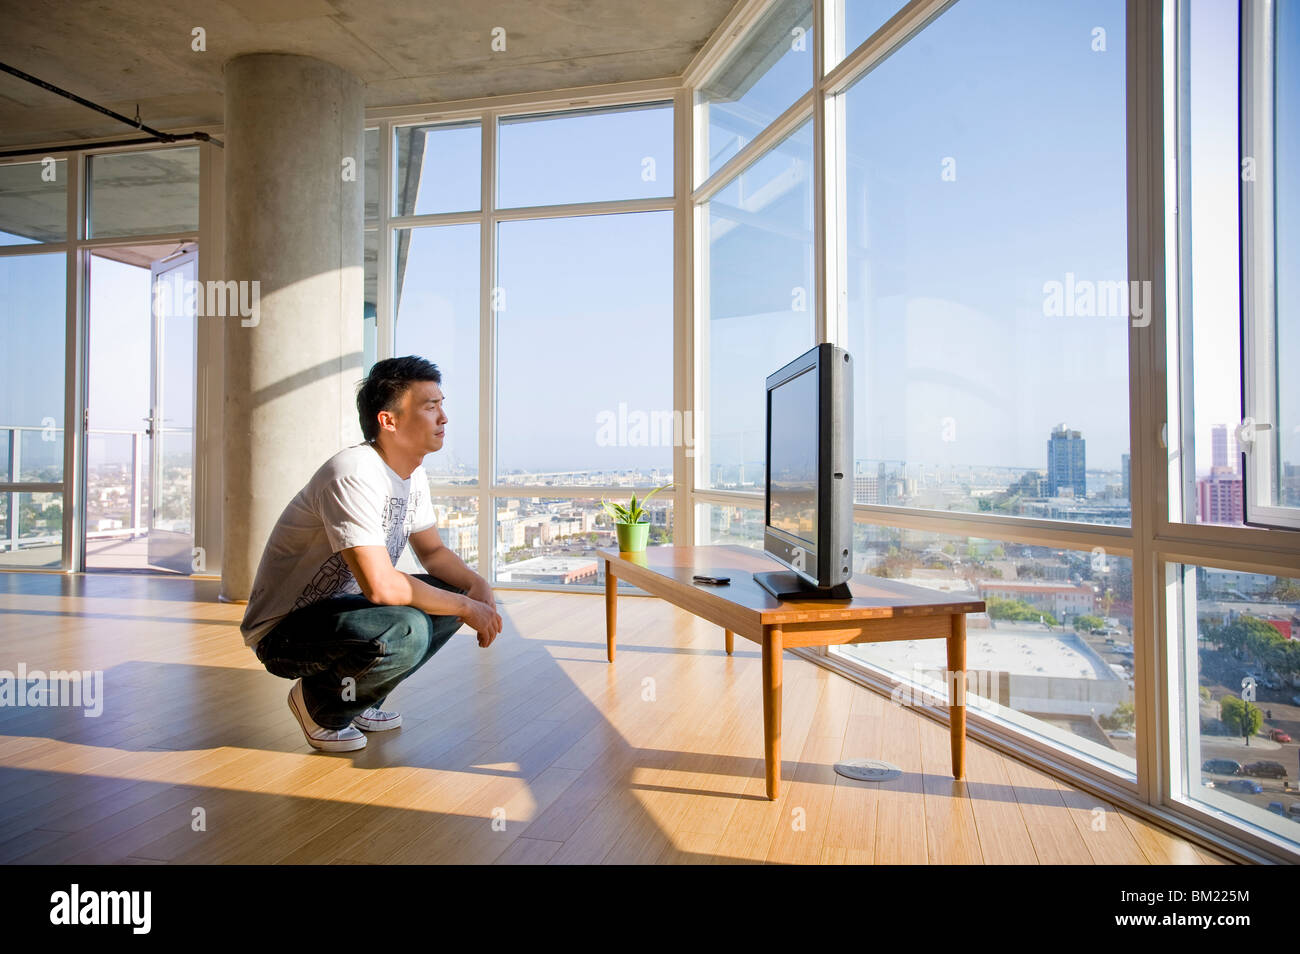 young man watching television in a spacious apartment san diego